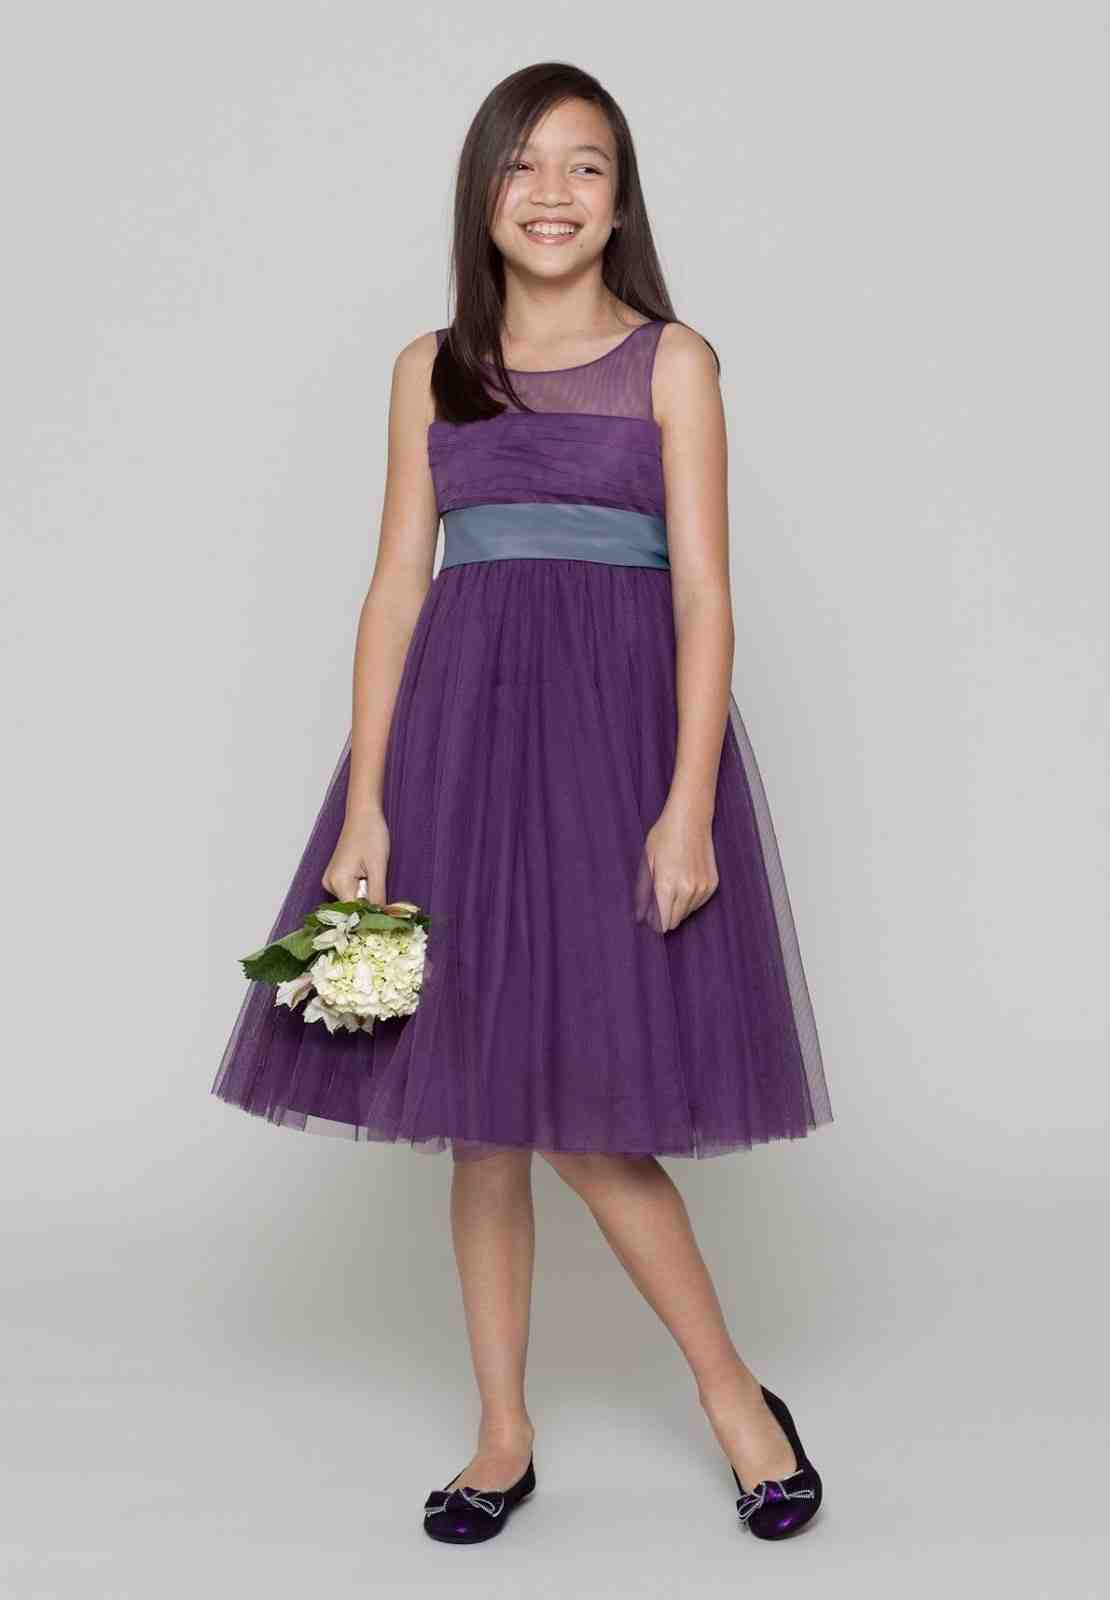 Junior bridesmaid dresses 5 tips for buying wedding and for Dresses for juniors for weddings